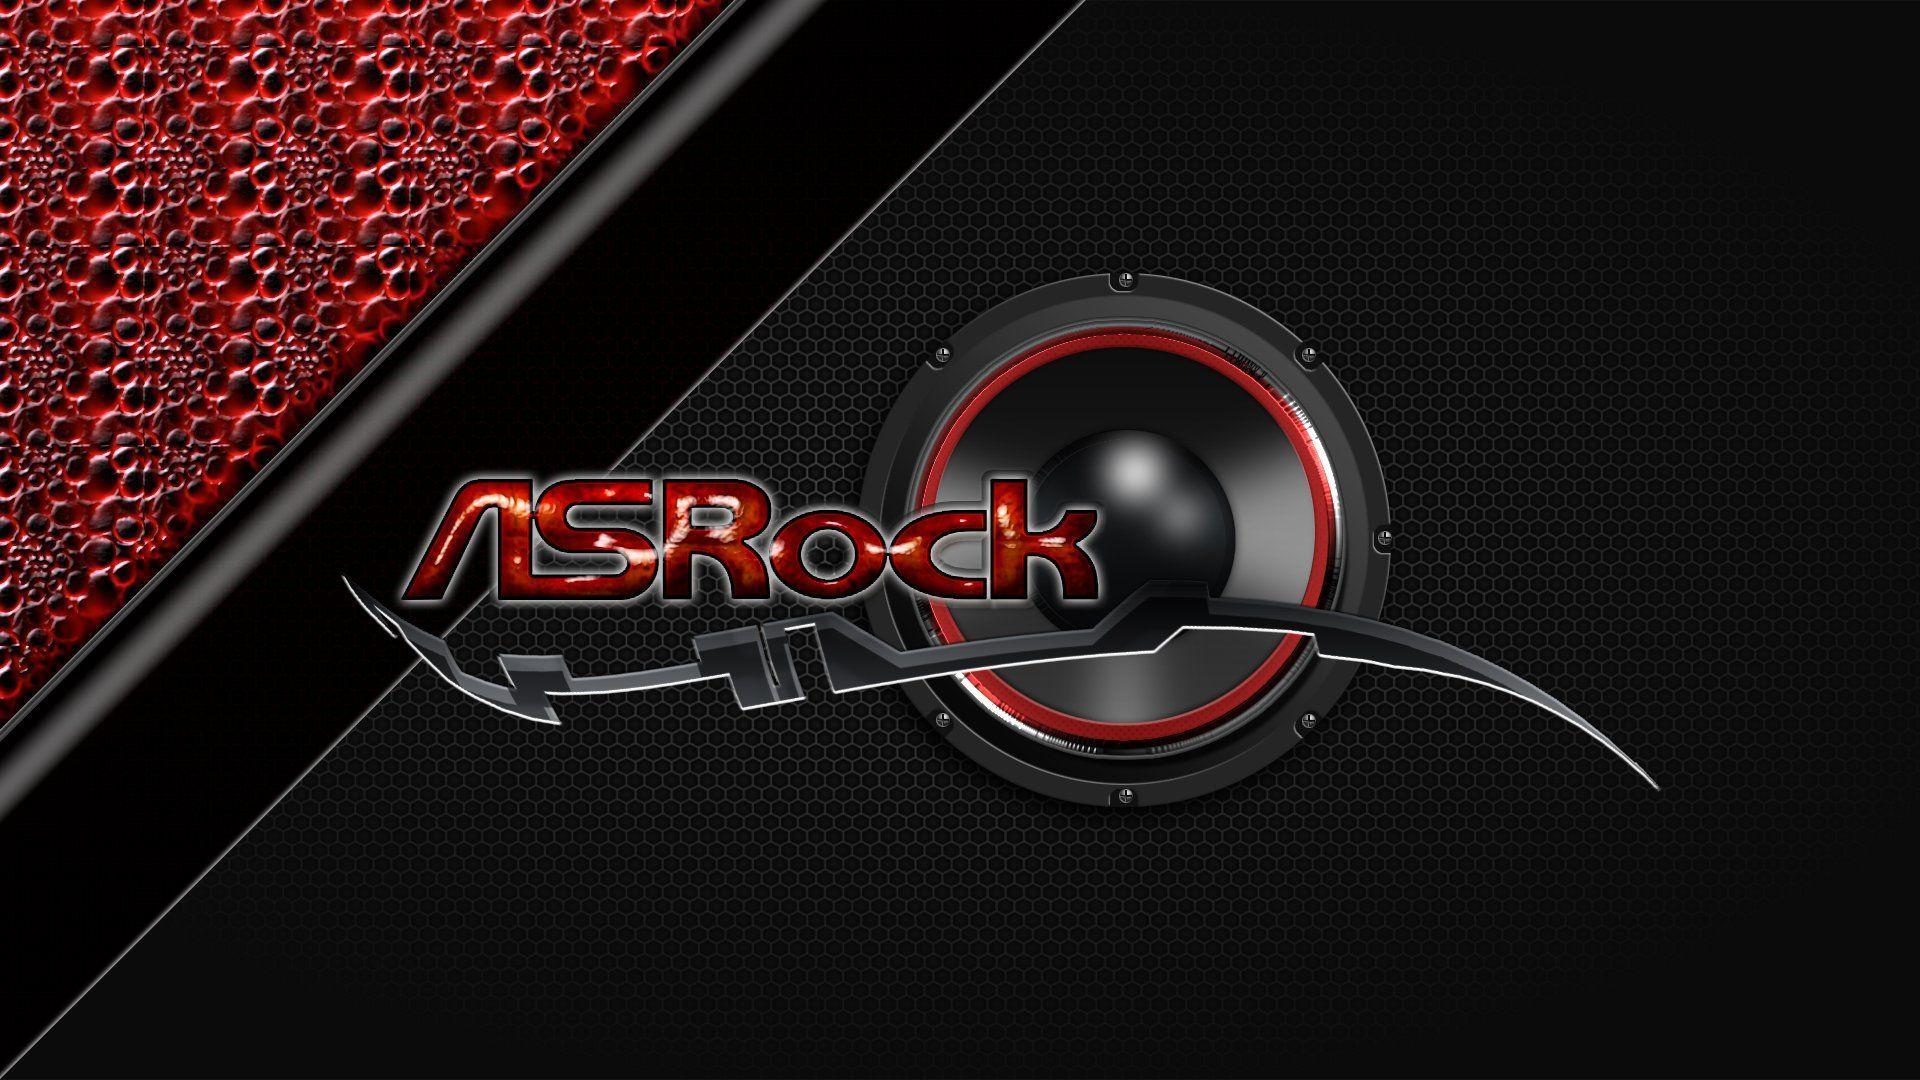 Asrock Wallpapers Top Free Asrock Backgrounds Wallpaperaccess